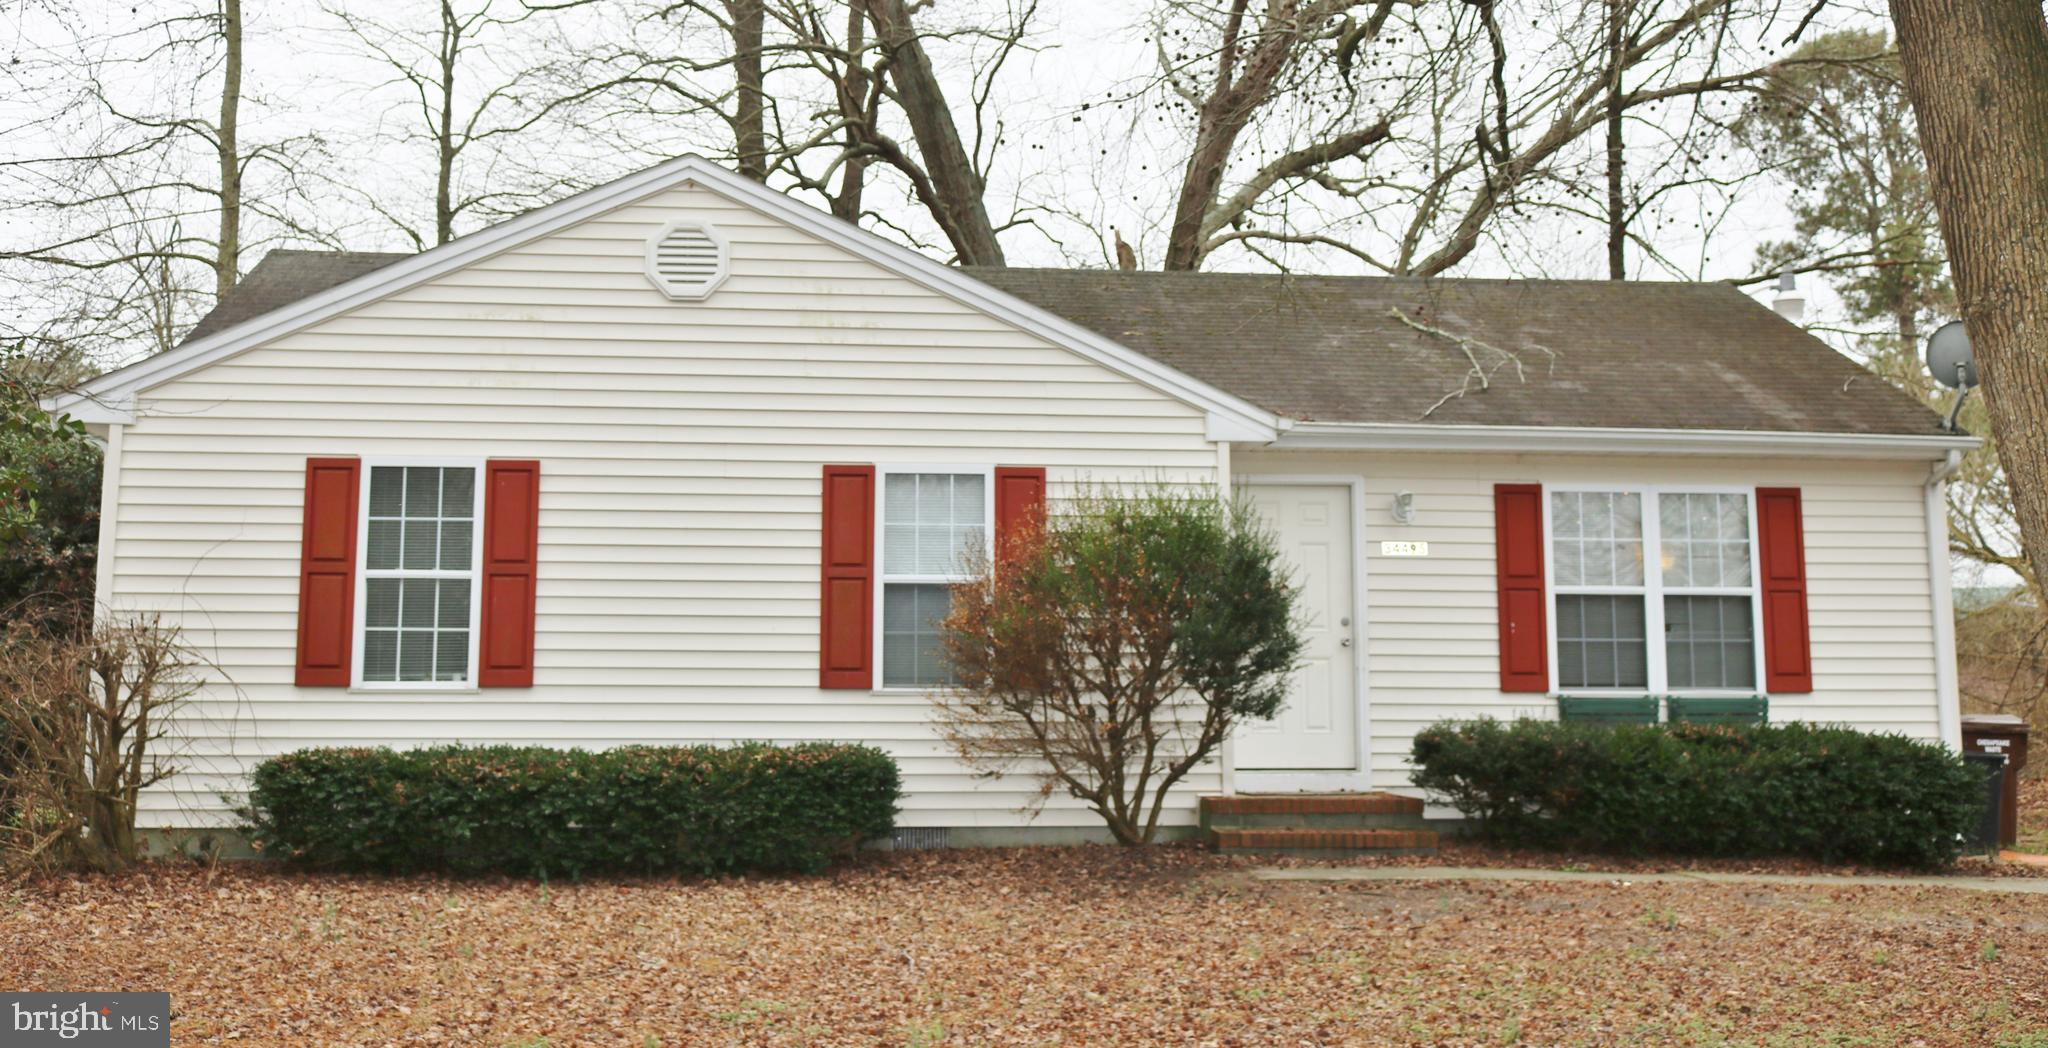 34495 OLD OCEAN CITY ROAD, PITTSVILLE, MD 21850